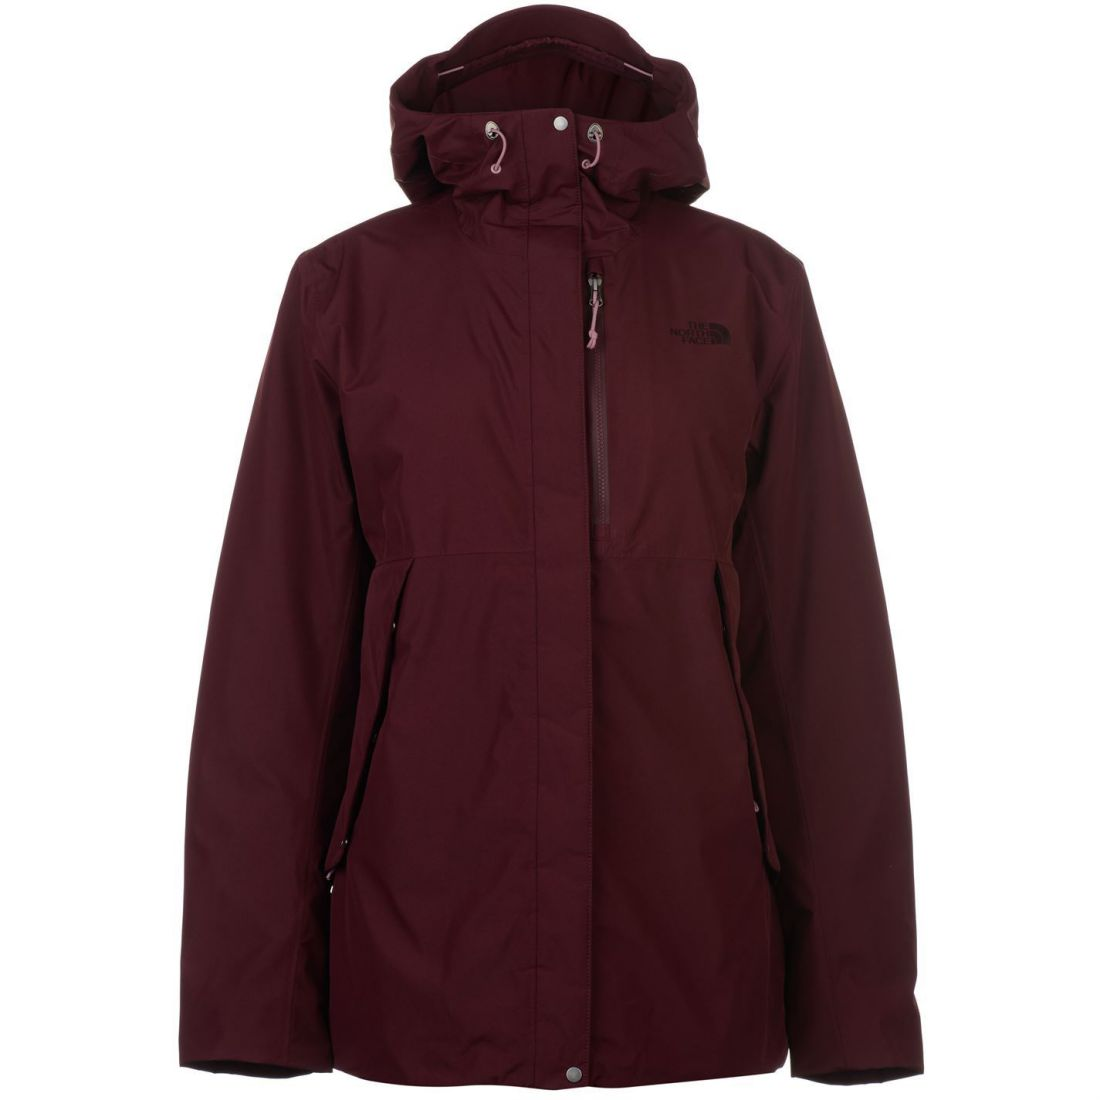 Chaqueta para mujer torendo The North Face Manga Larga Abrigo impermeable transpirable superior